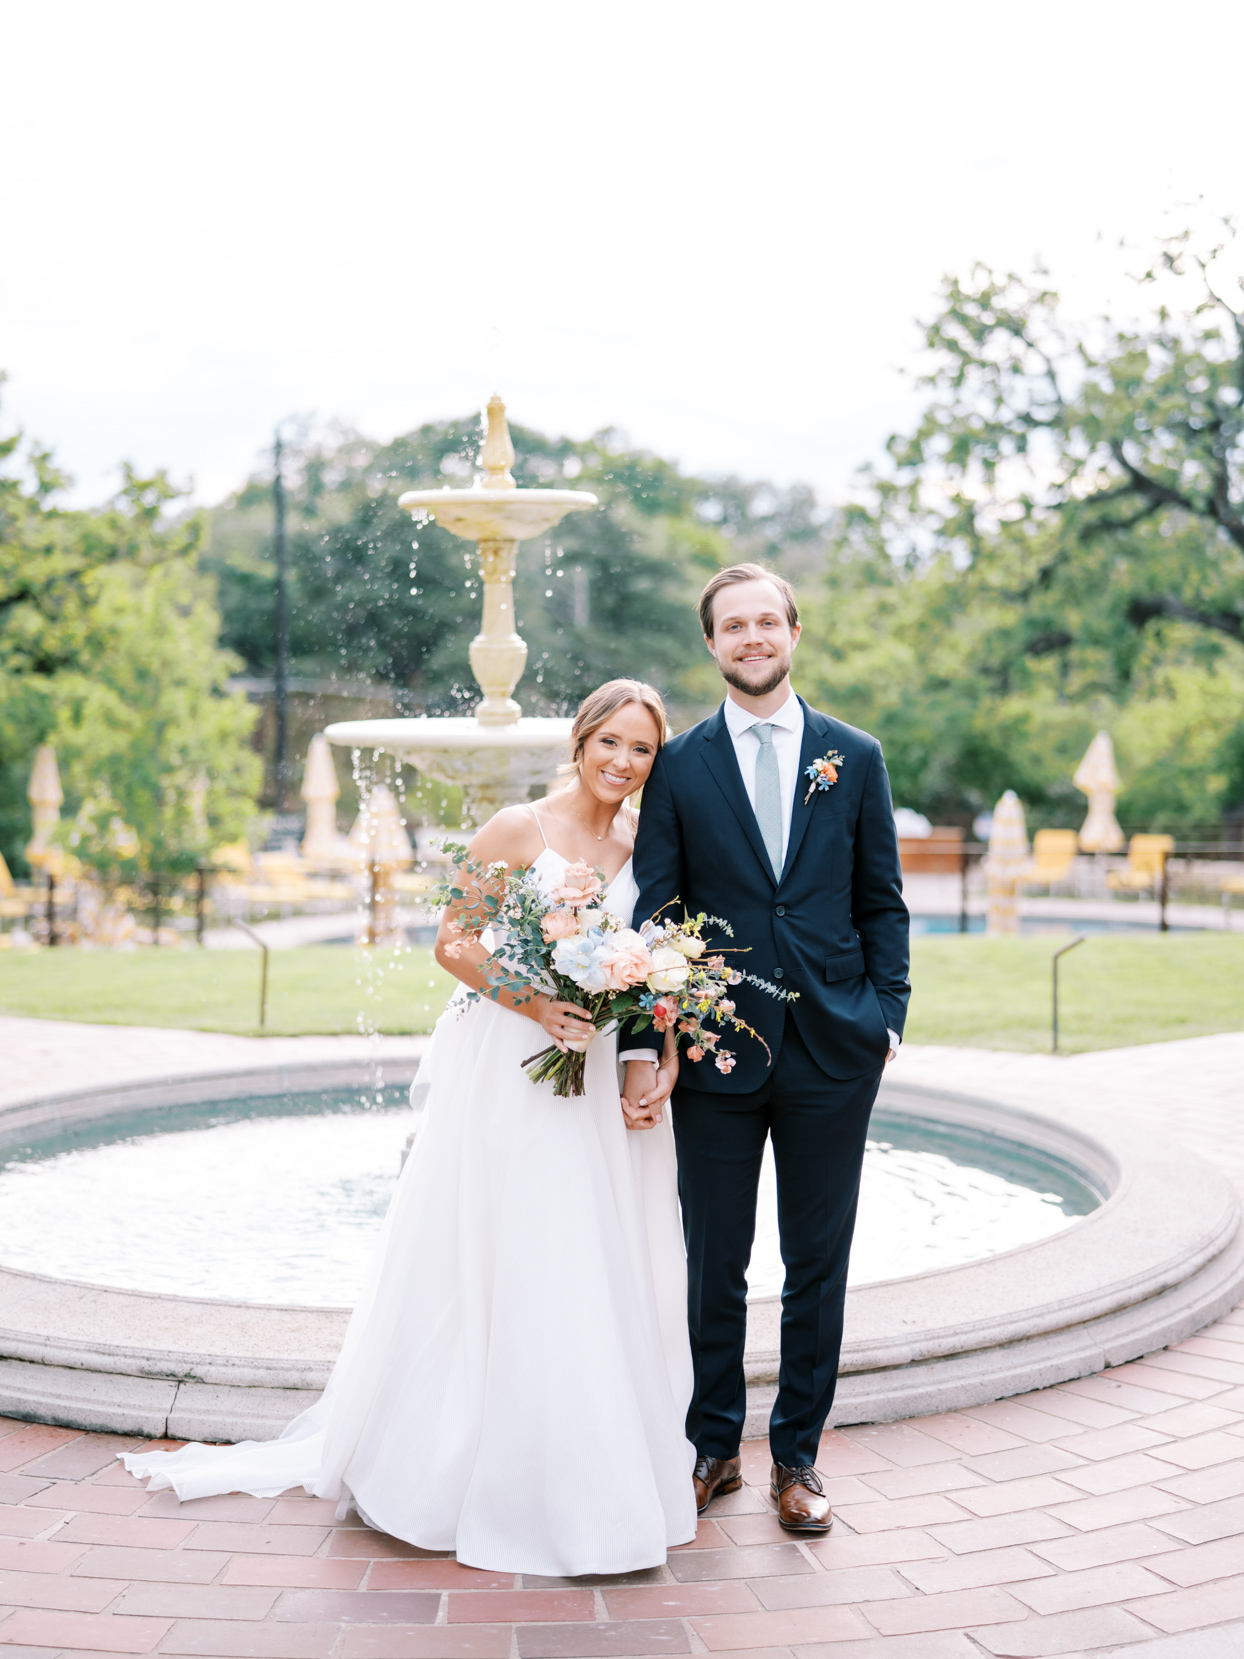 couple wedding portrait in front of fountain